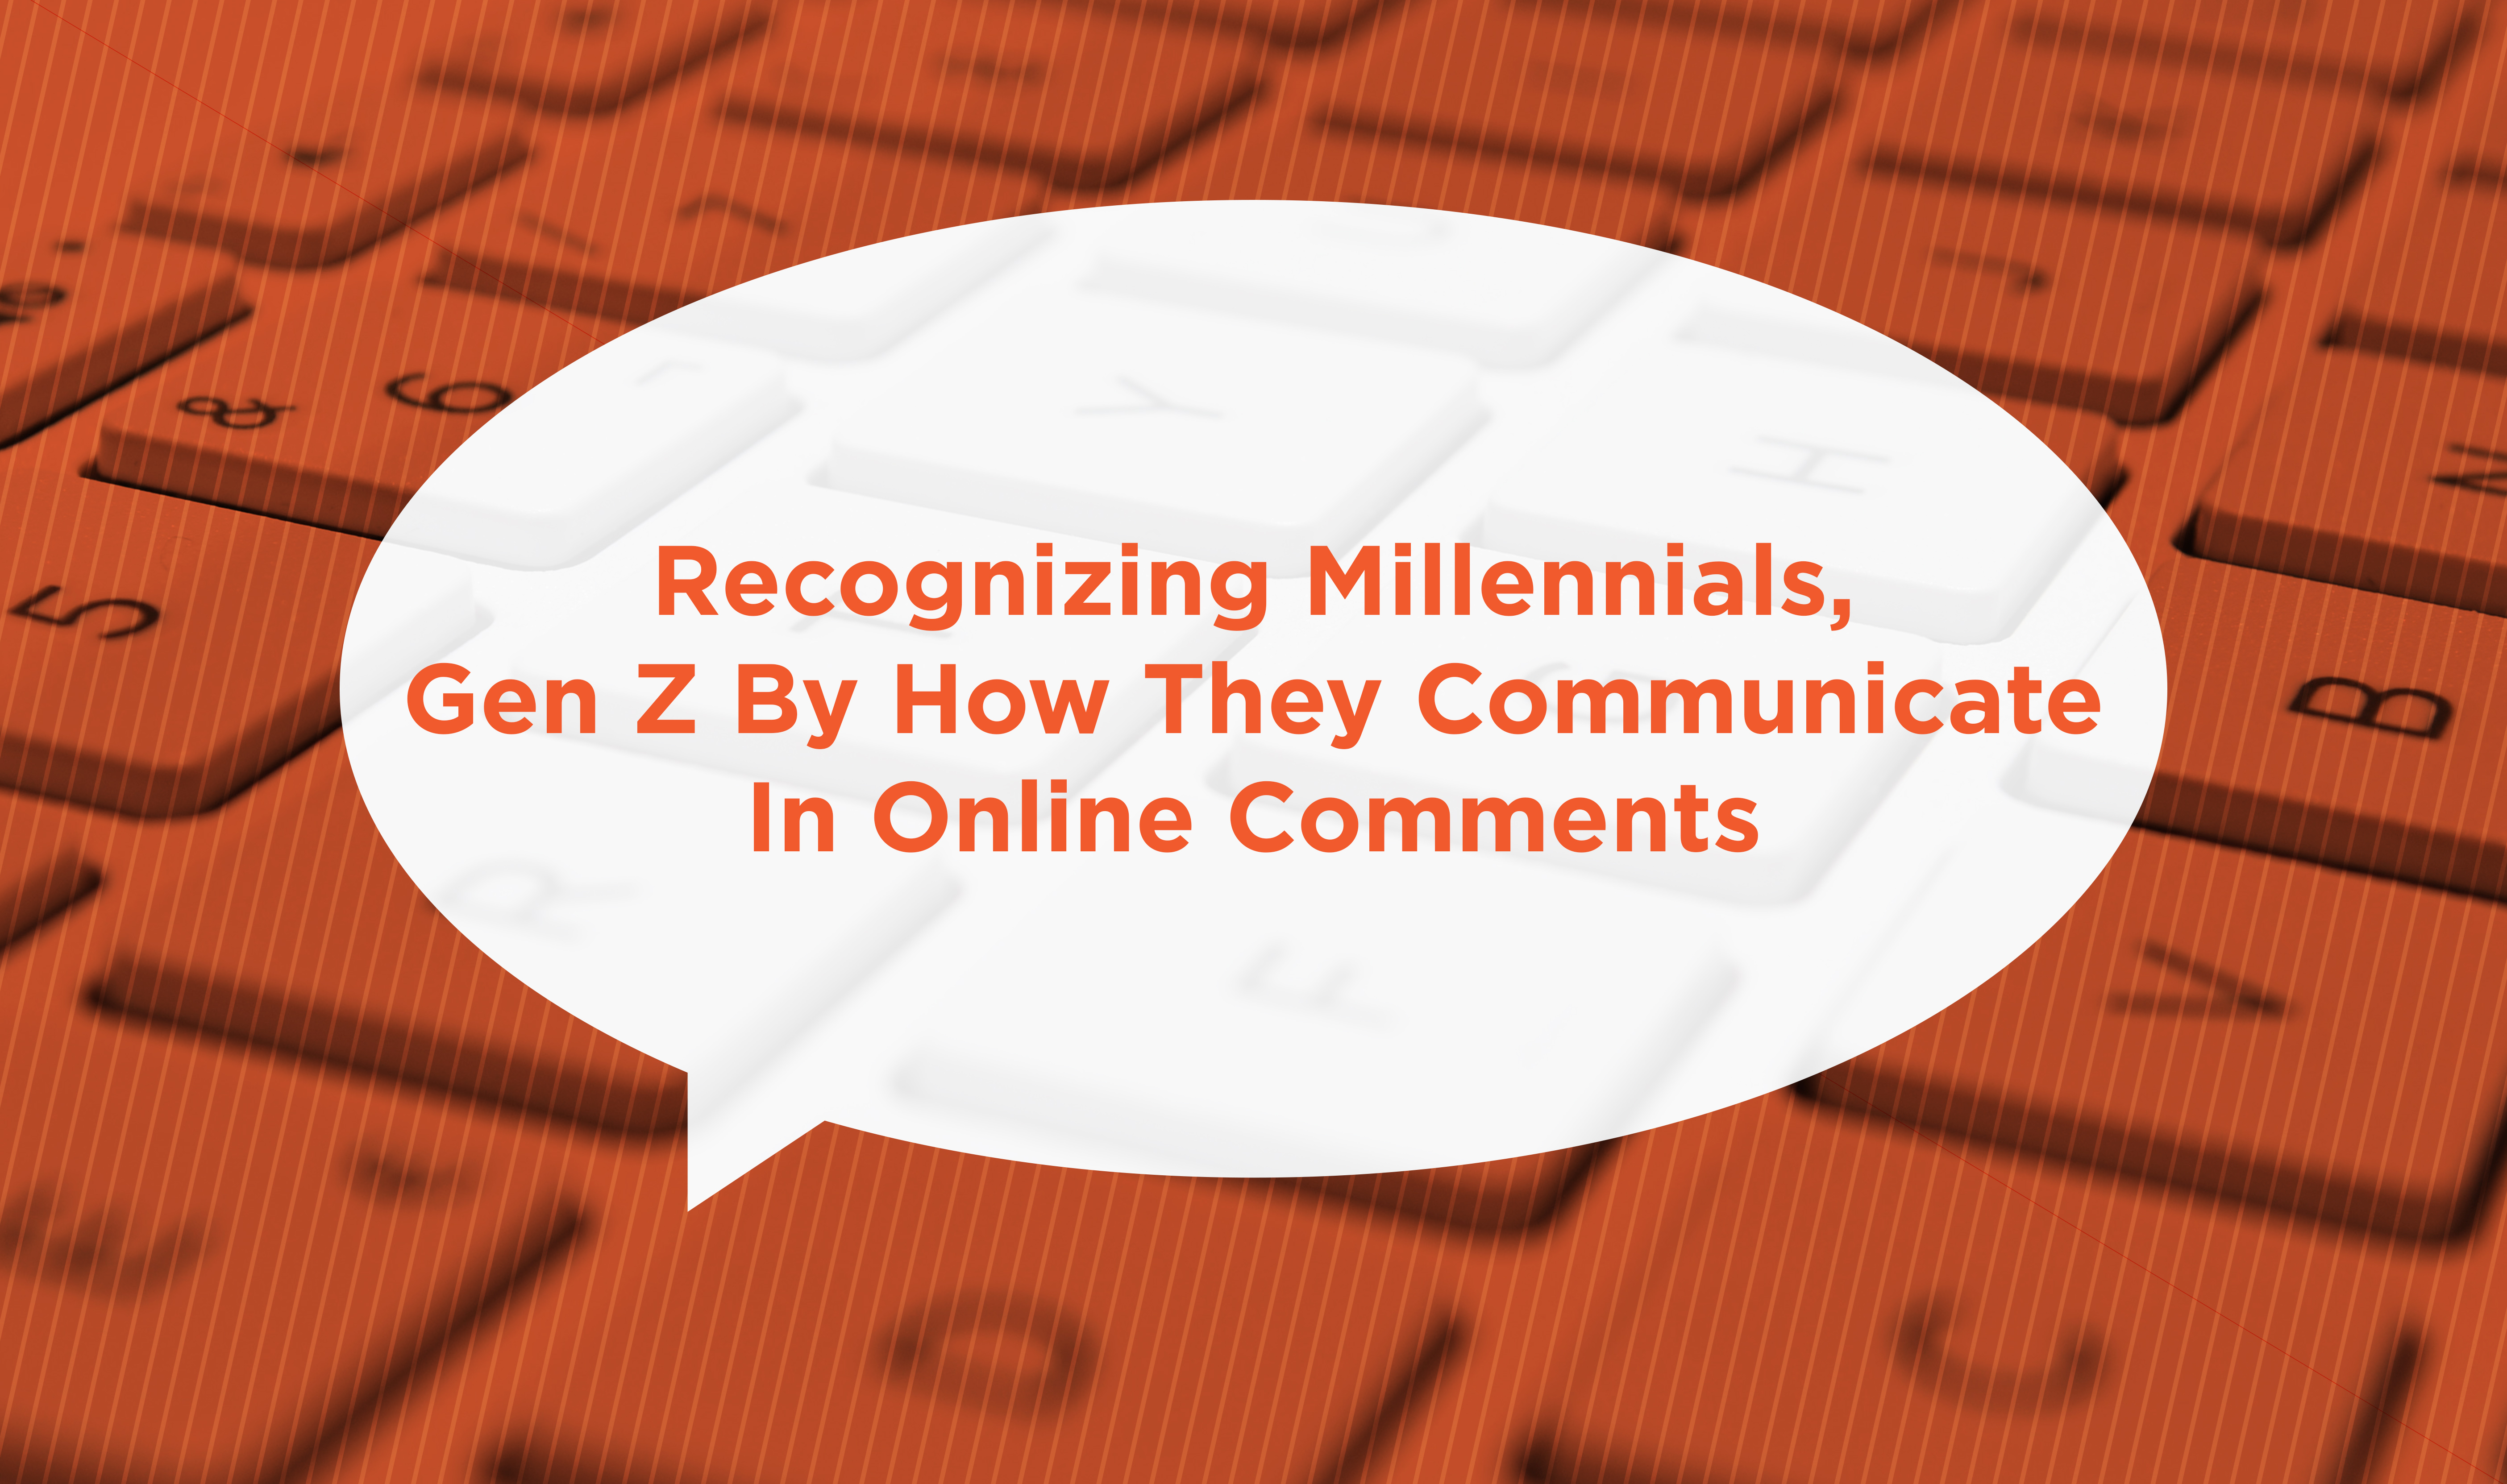 Recognizing Millennials, Gen Z By How They Communicate In Online Comments